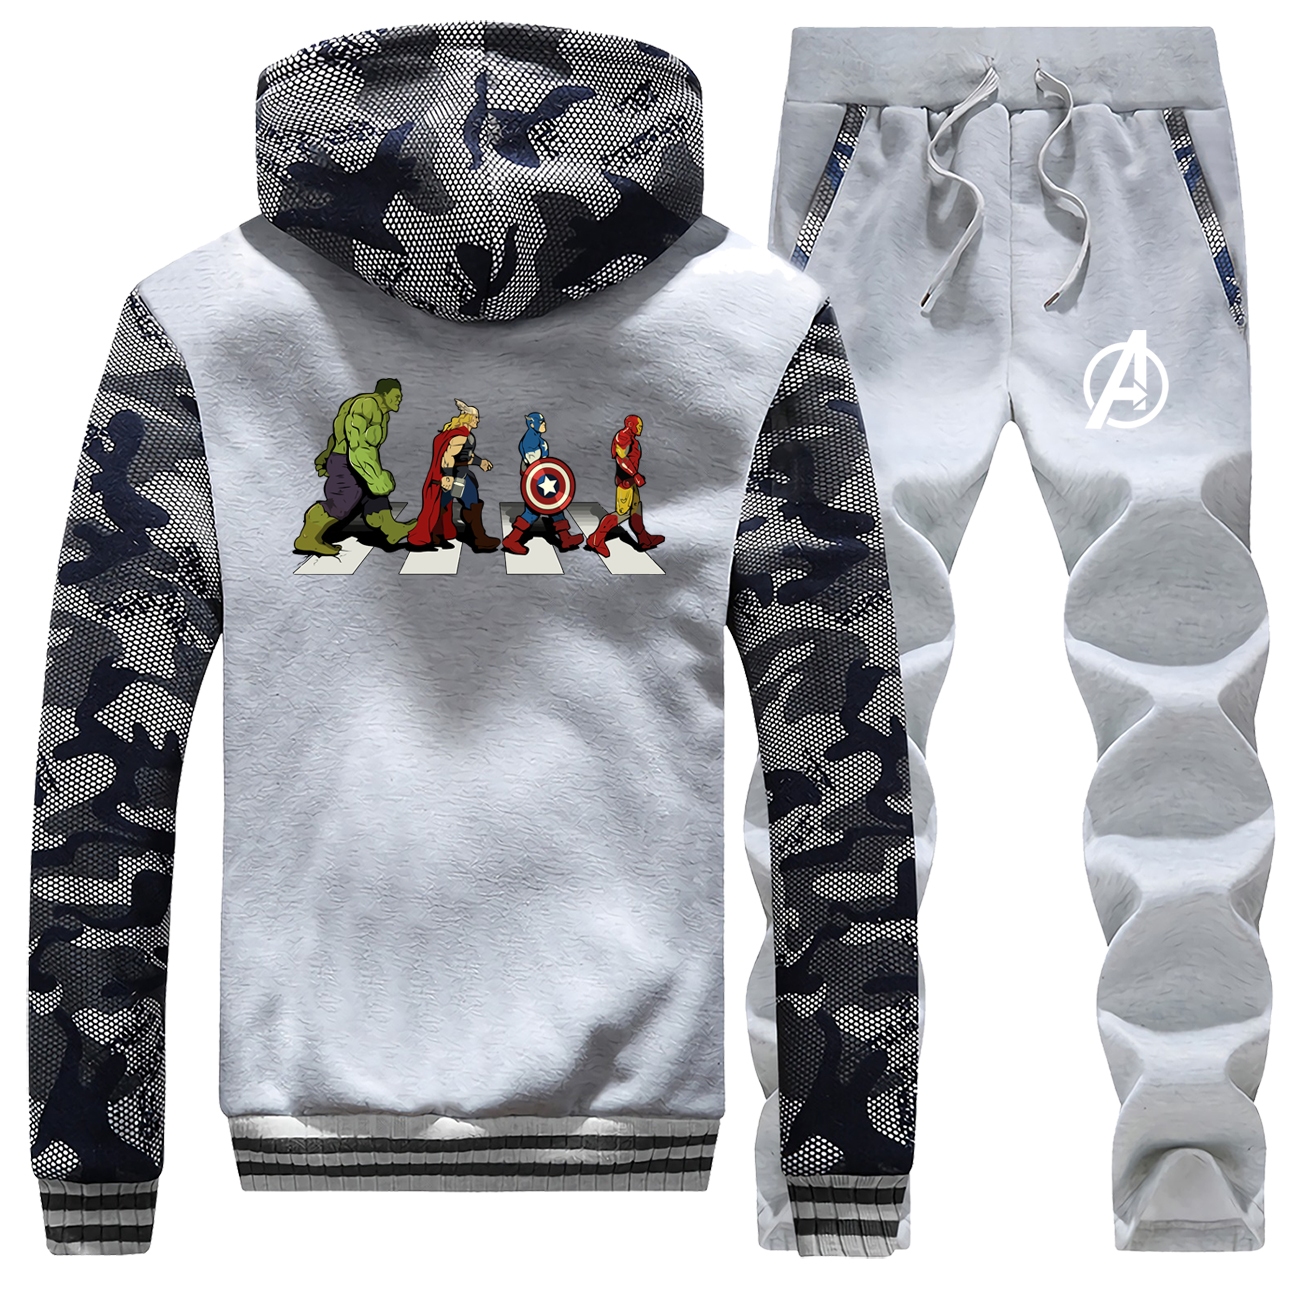 New 2019 Winter Coat Thick Hoodies Suit The Avngers Raglan Mens Sweatshirts Camouflage Jackets Zipper Hooded+Pants 2 Piece Set